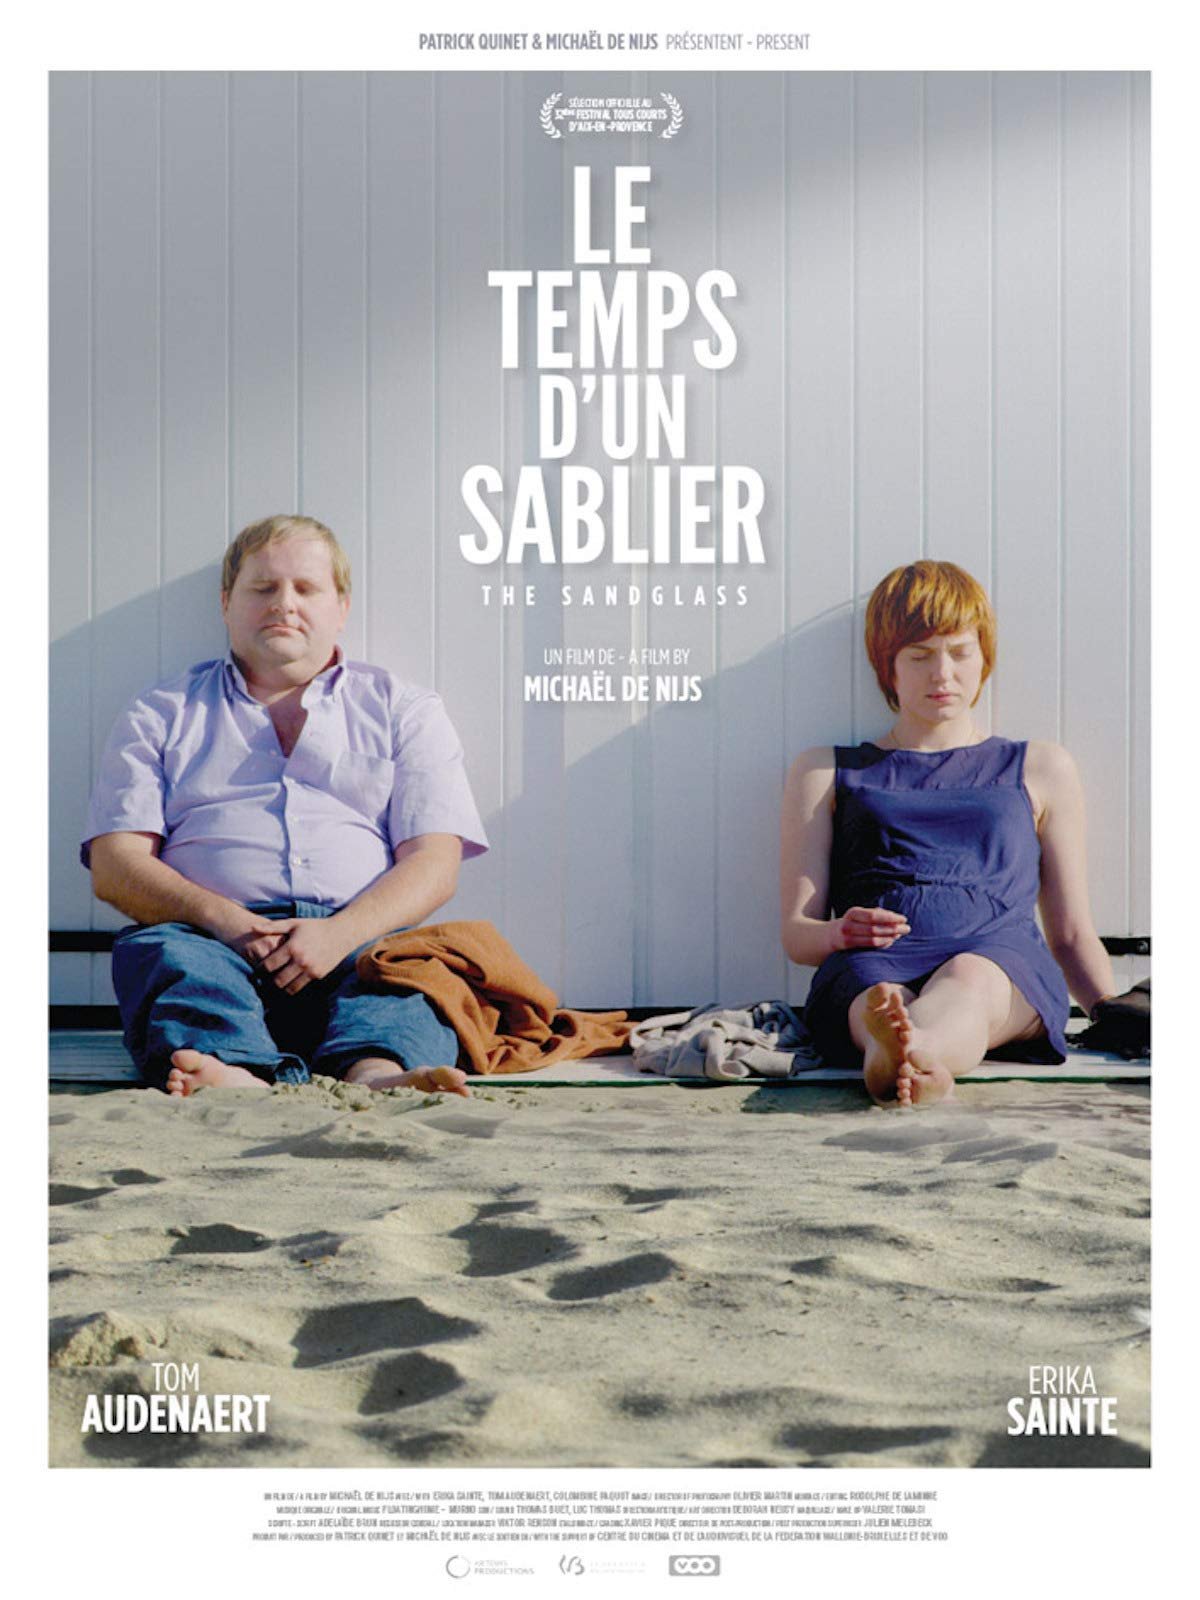 The Sandglass (Le Temps D'Un Sablier)